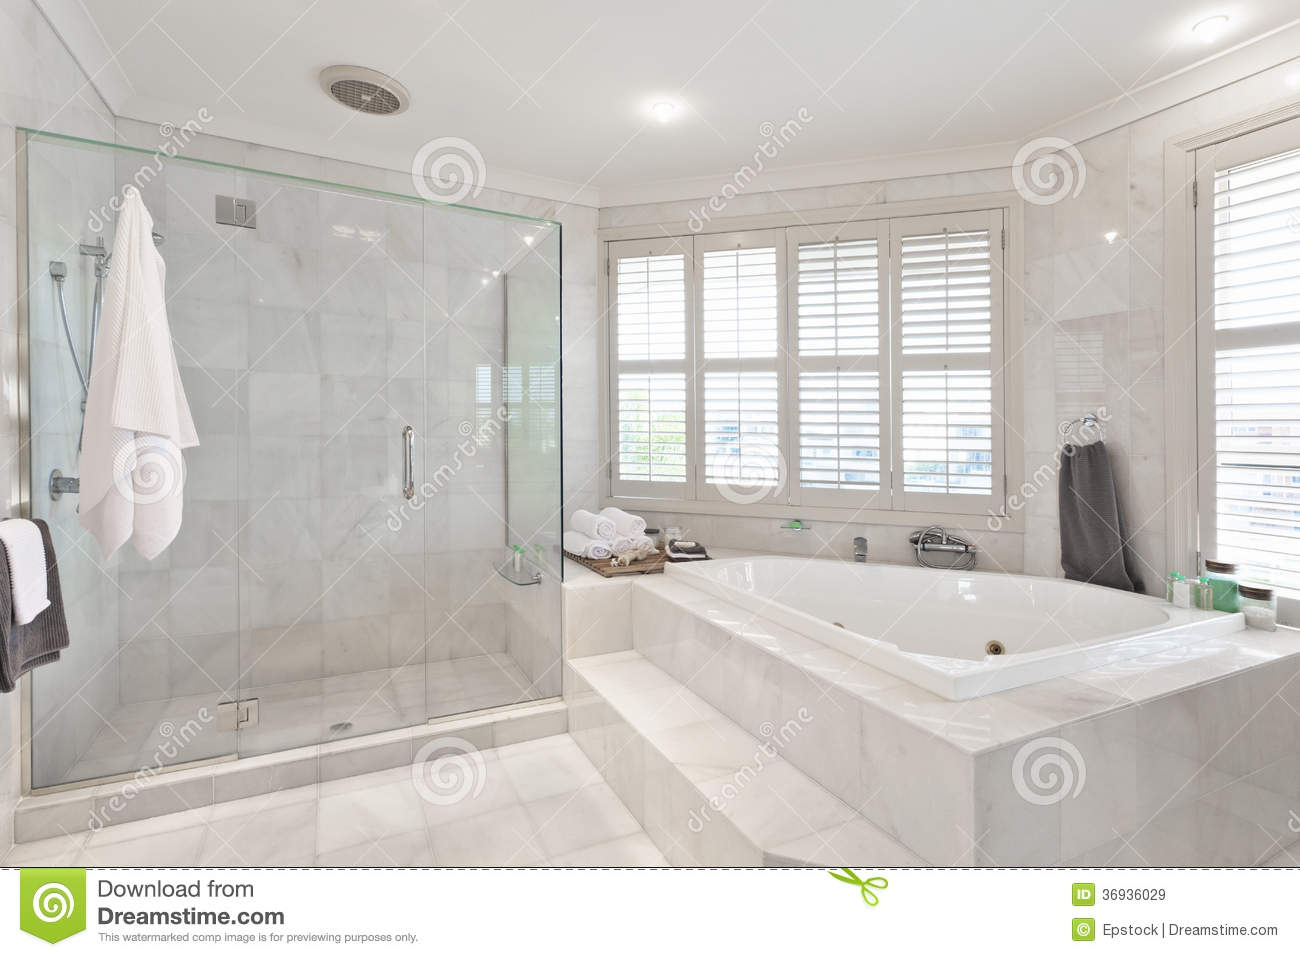 Fachwerkbalken Streichen Beautiful Modern Bathroom In Australian Mansion Royalty